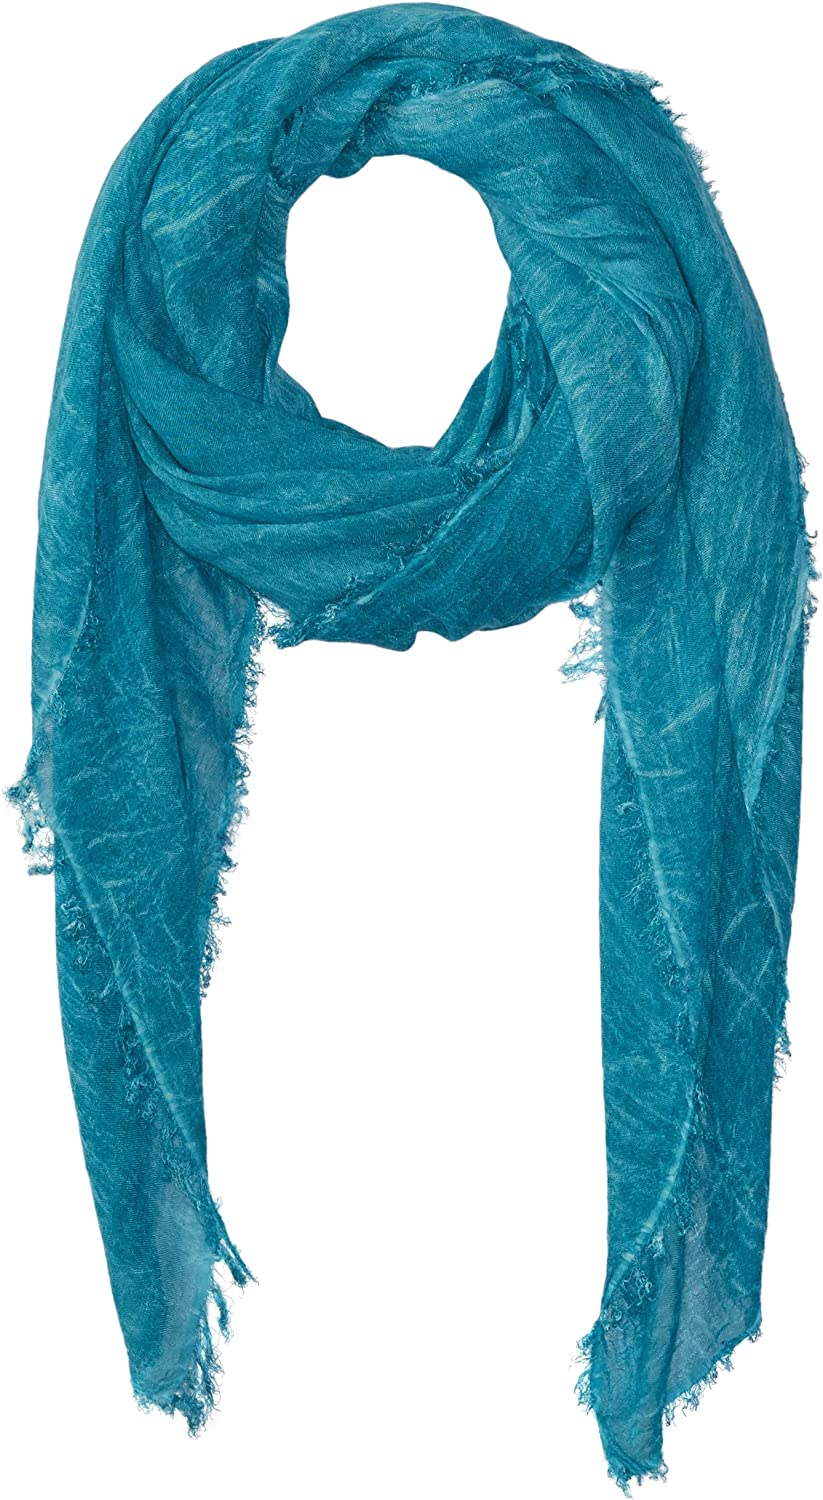 La Fiorentina Women's Italian Collection Acid Wash Scarf